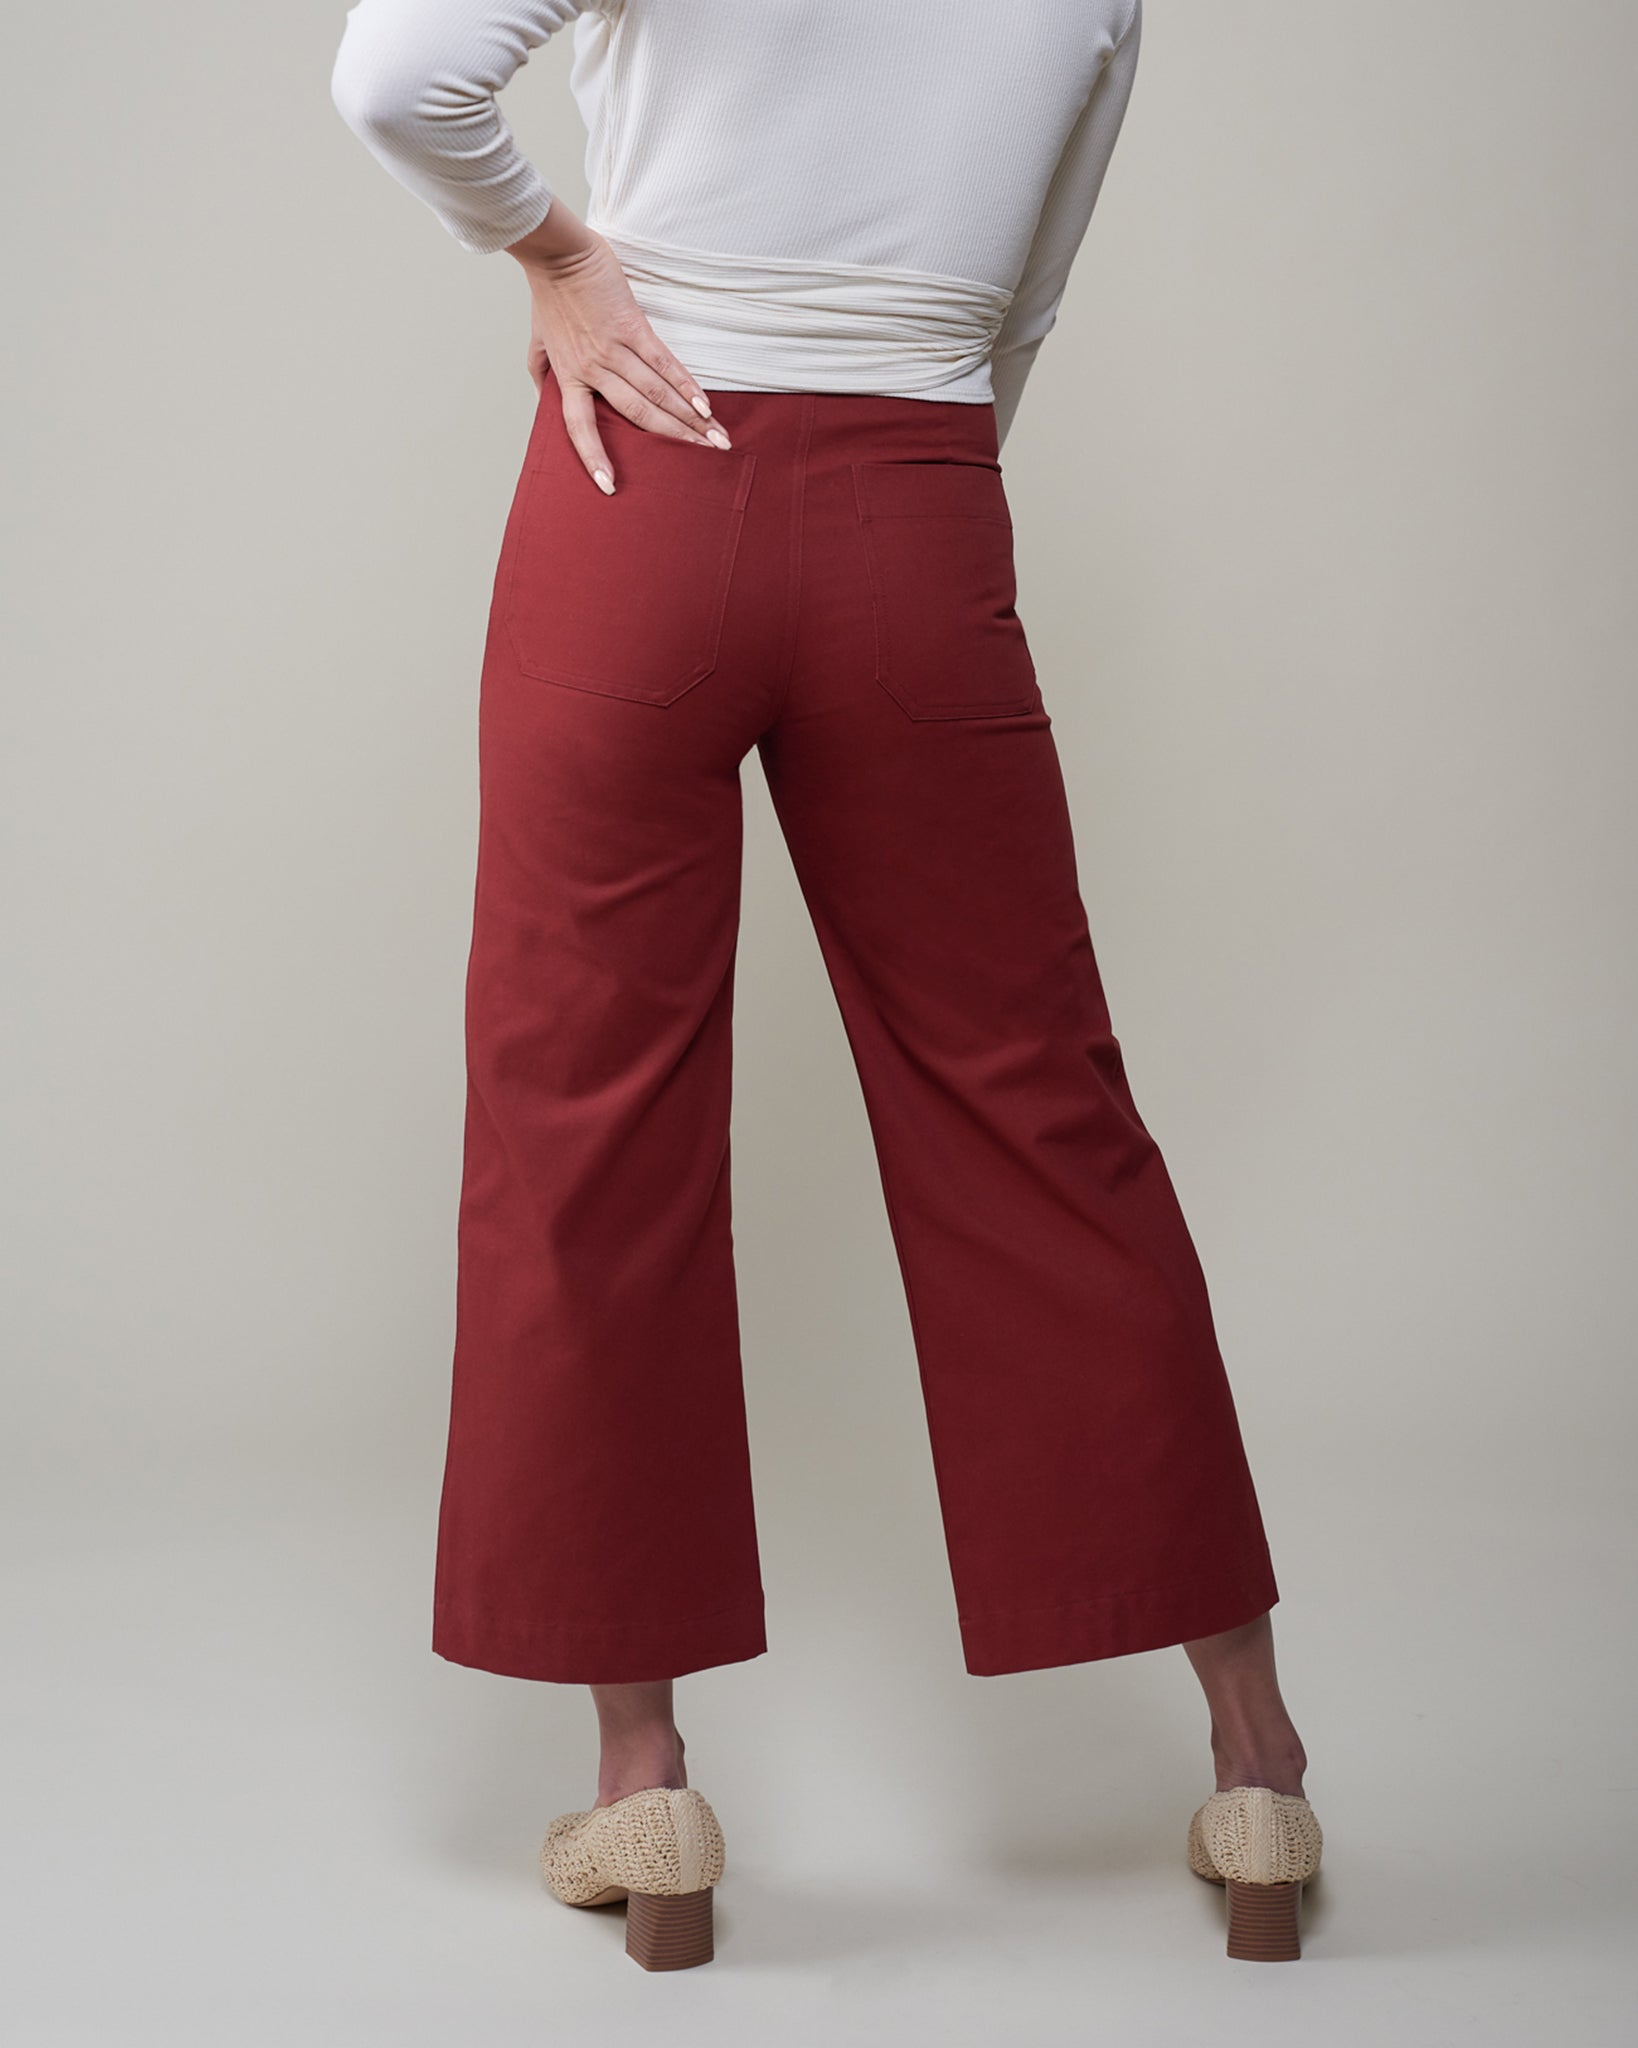 The Carmen Pant - 40% Off